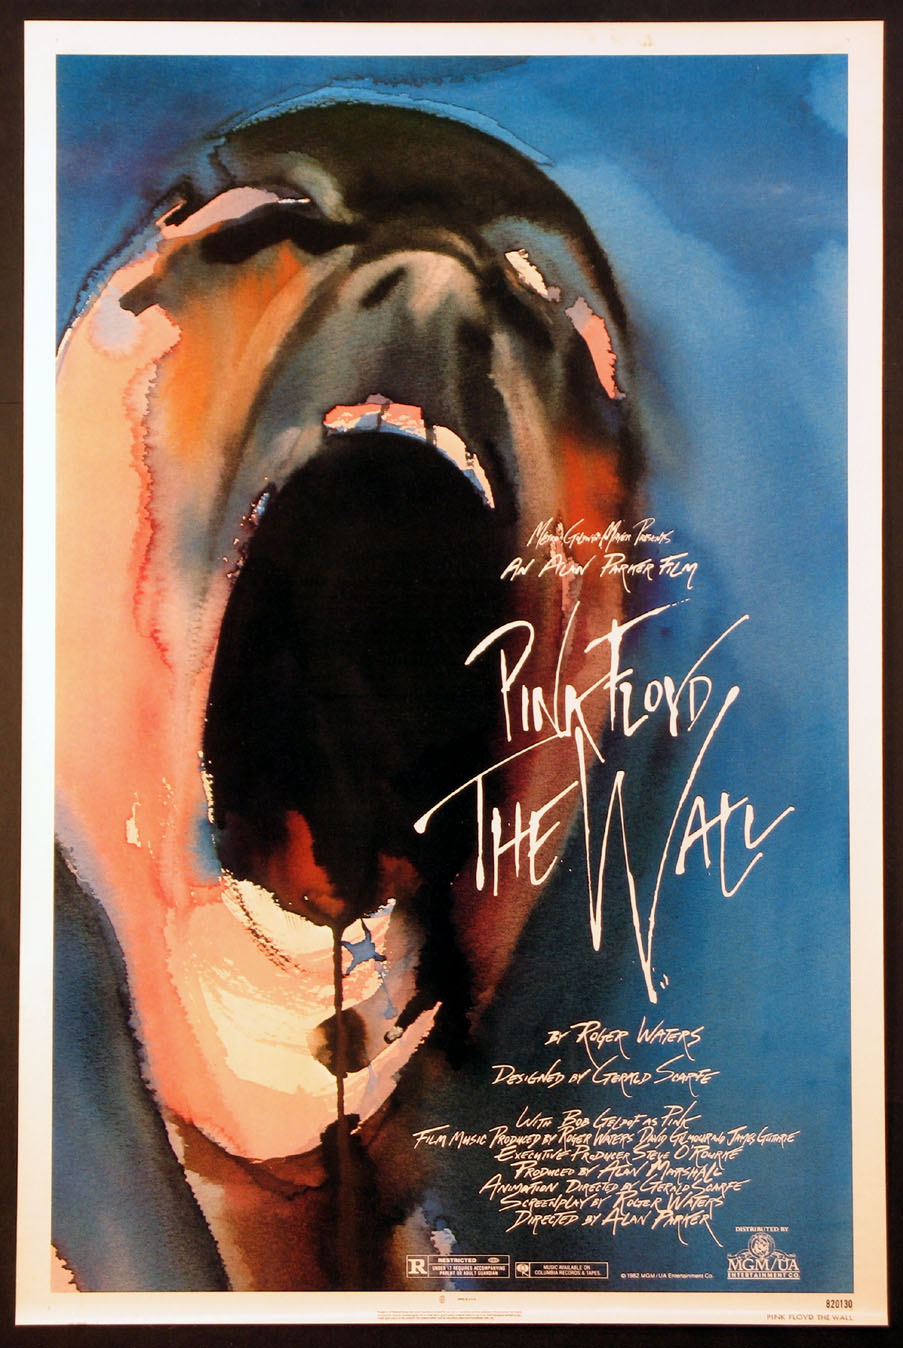 PINK FLOYD THE WALL (THE WALL) @ FilmPosters.com